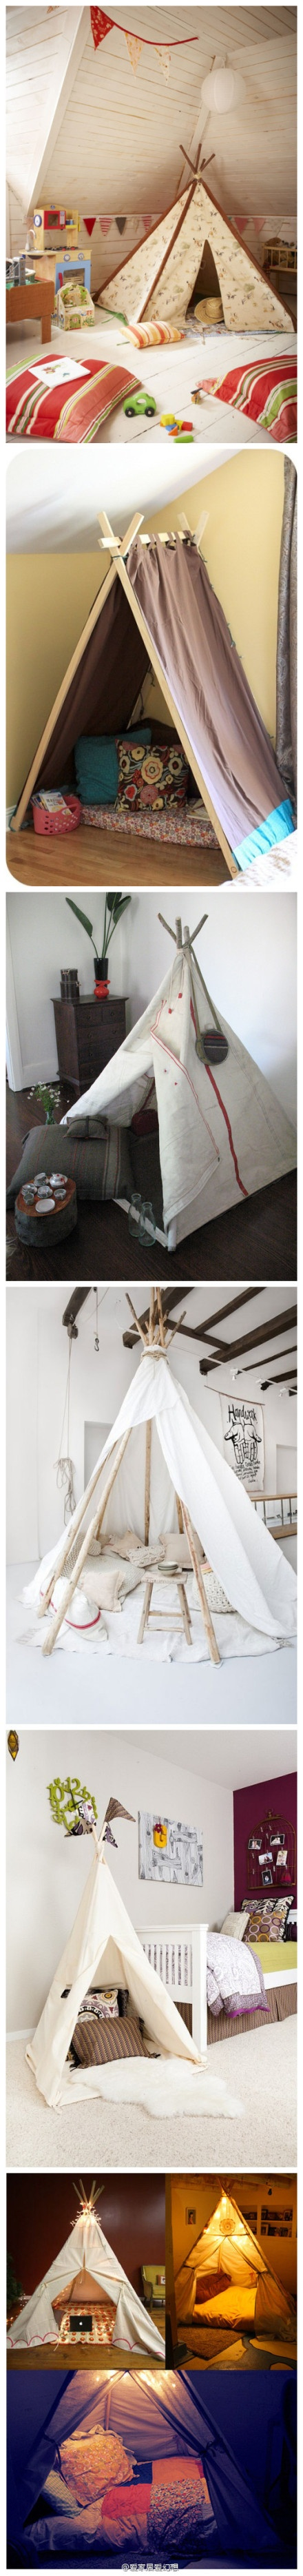 More wigwam/teepee tents for kids :))